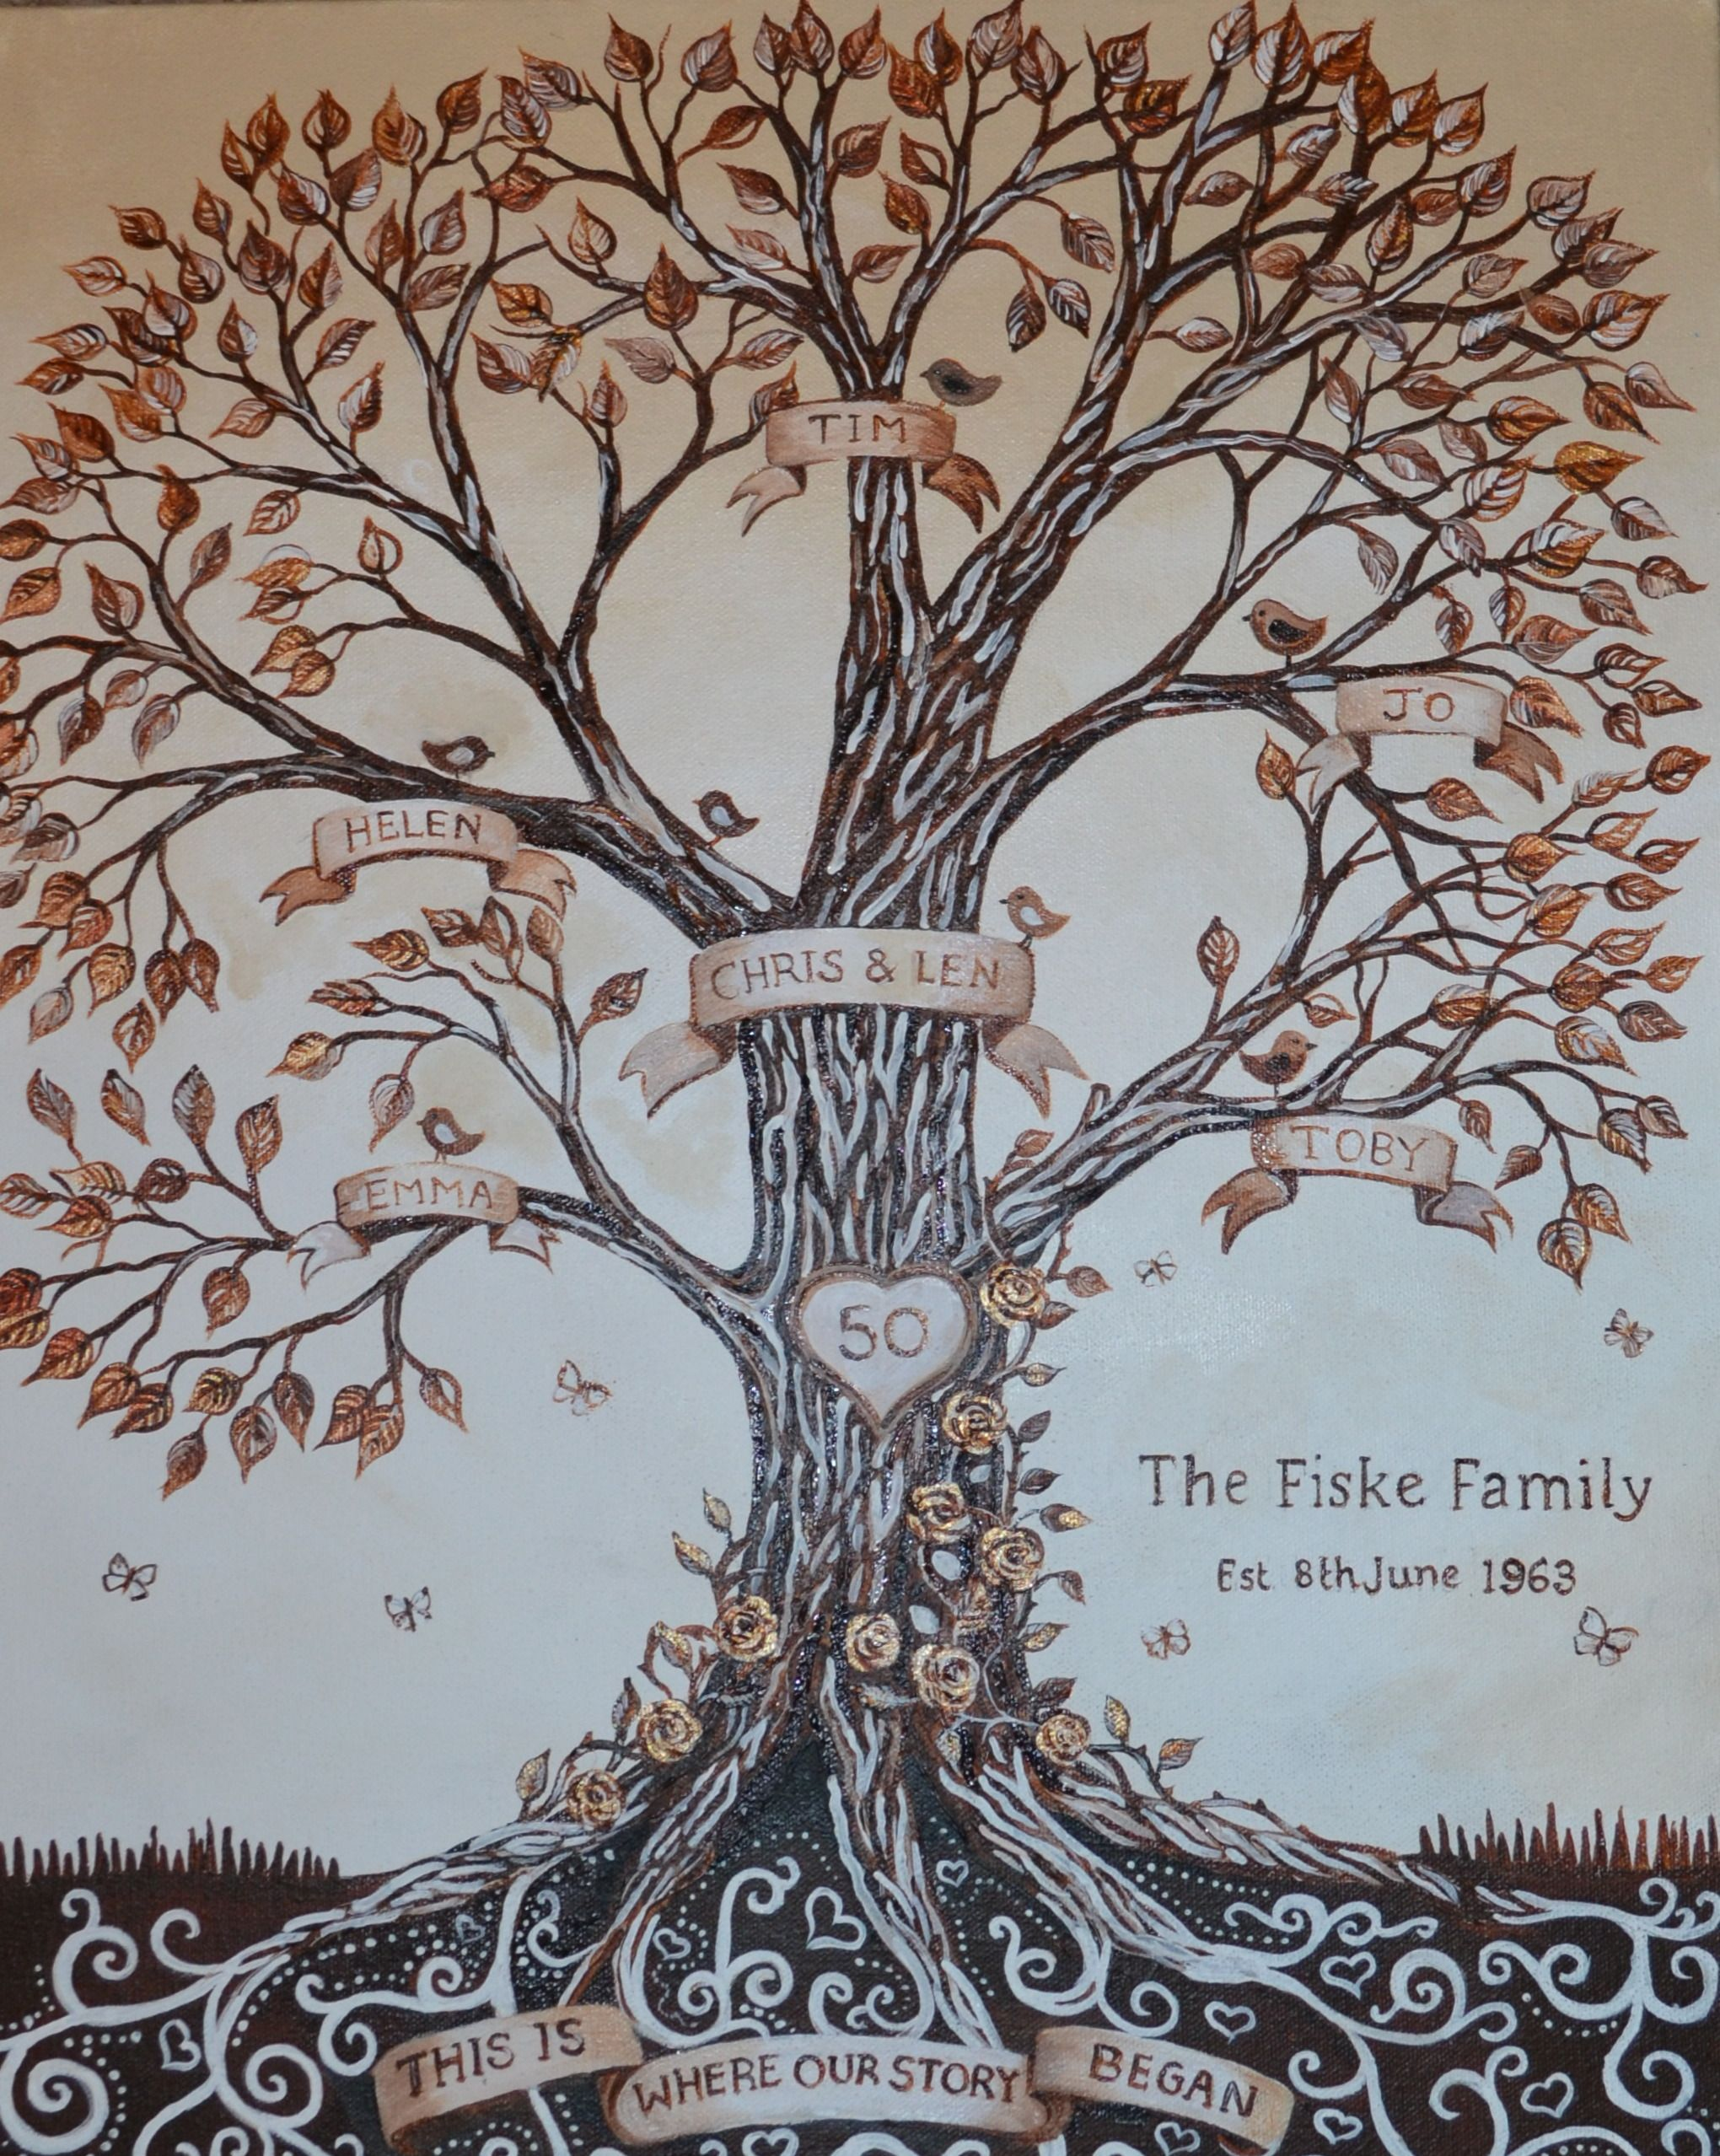 Hochzeit Stammbaum Family Tree Painted For A Golden Wedding Anniversary Bilder